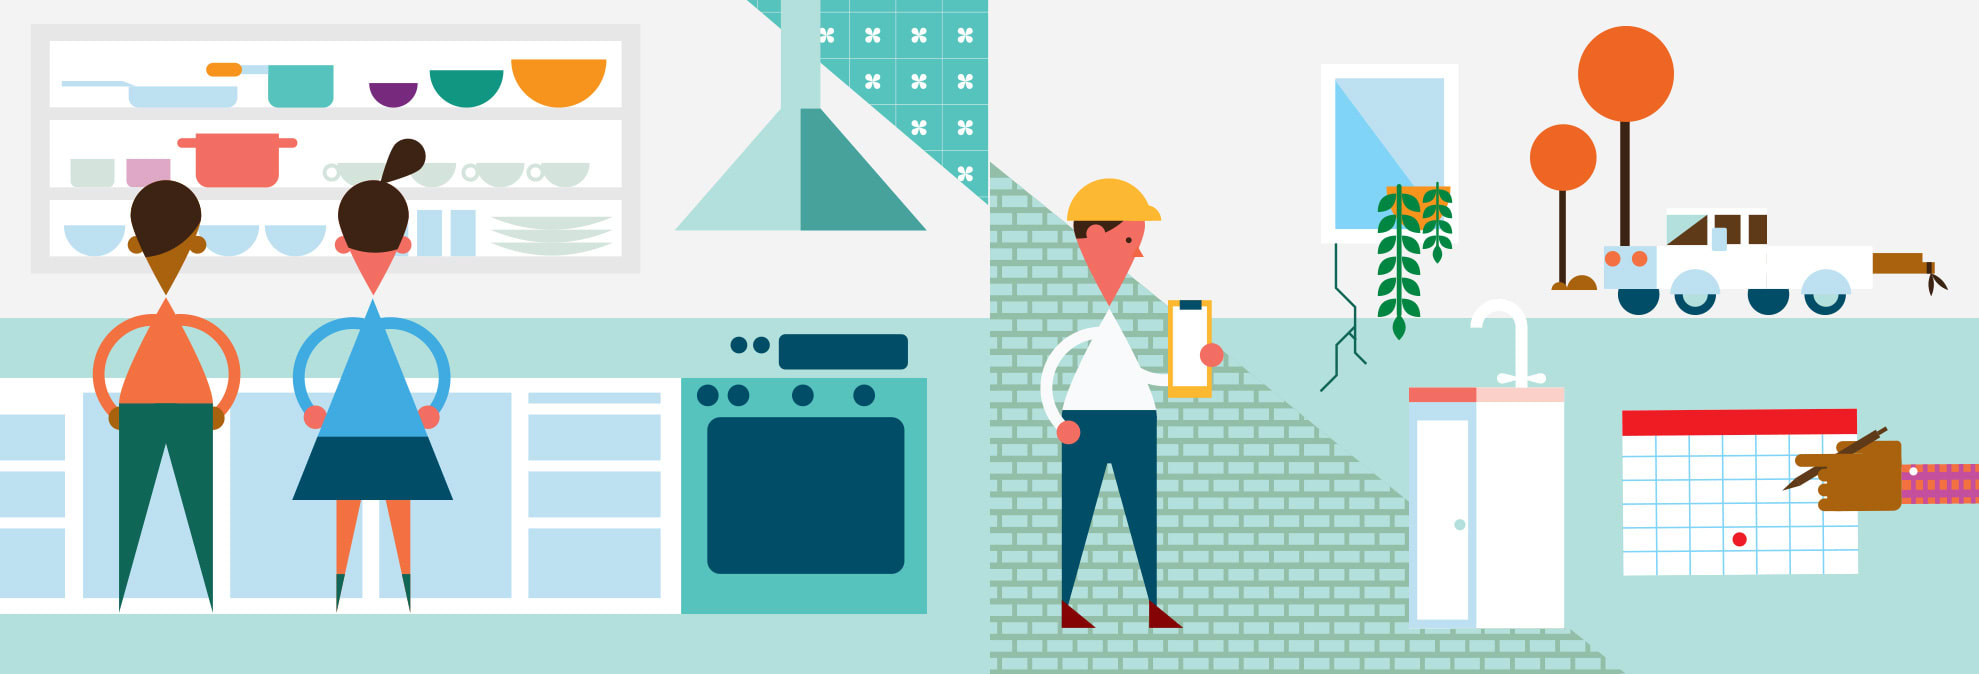 How to Remodel on a Budget and Stay on Schedule - Consumer Reports